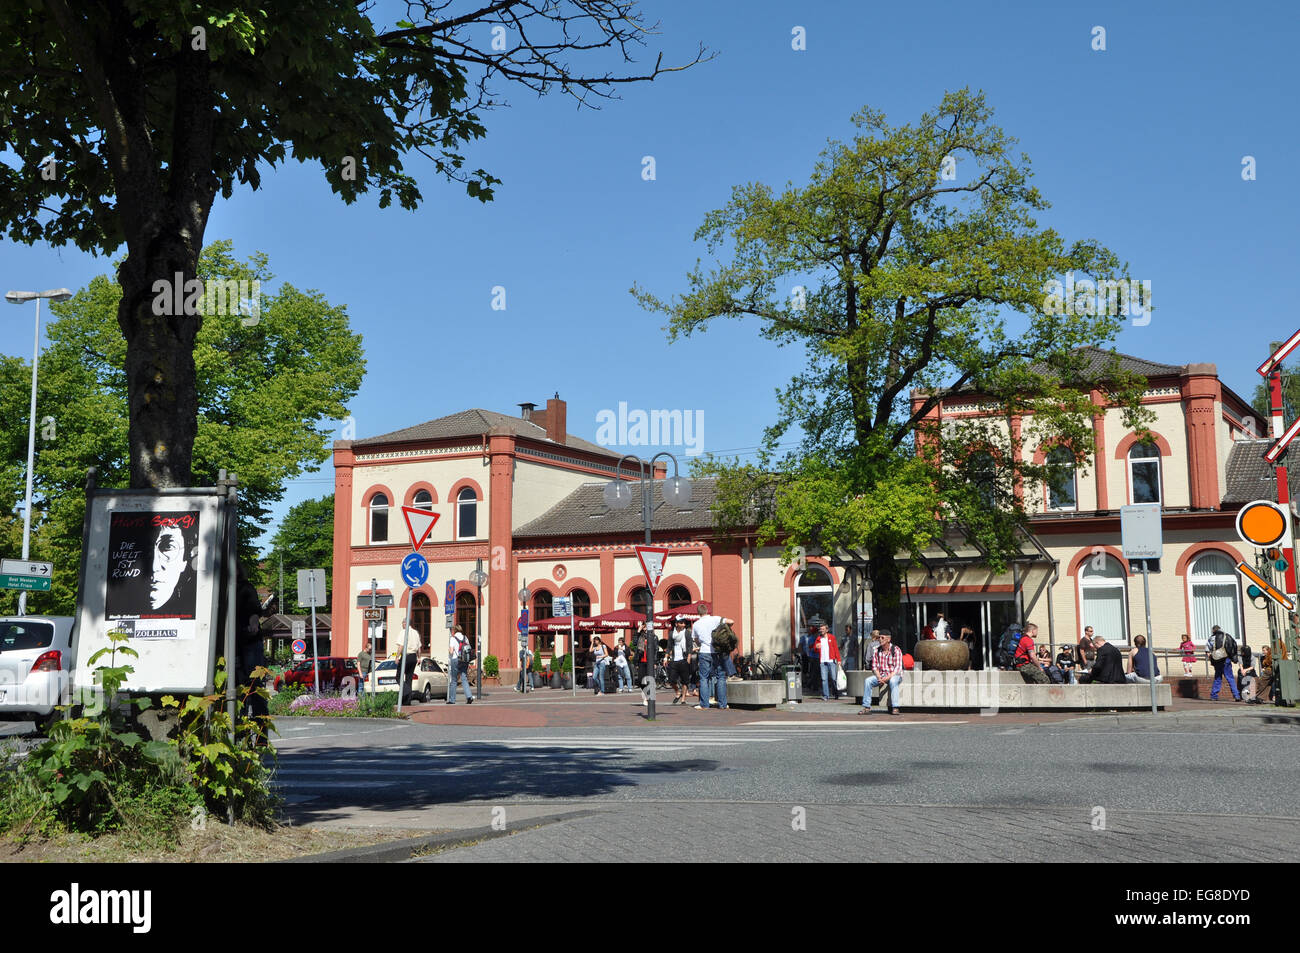 LEER, GERMANY - JUNE 2010: Railway station of Leer, a town in the northwestern part of Lower Saxony, Germany - Stock Image